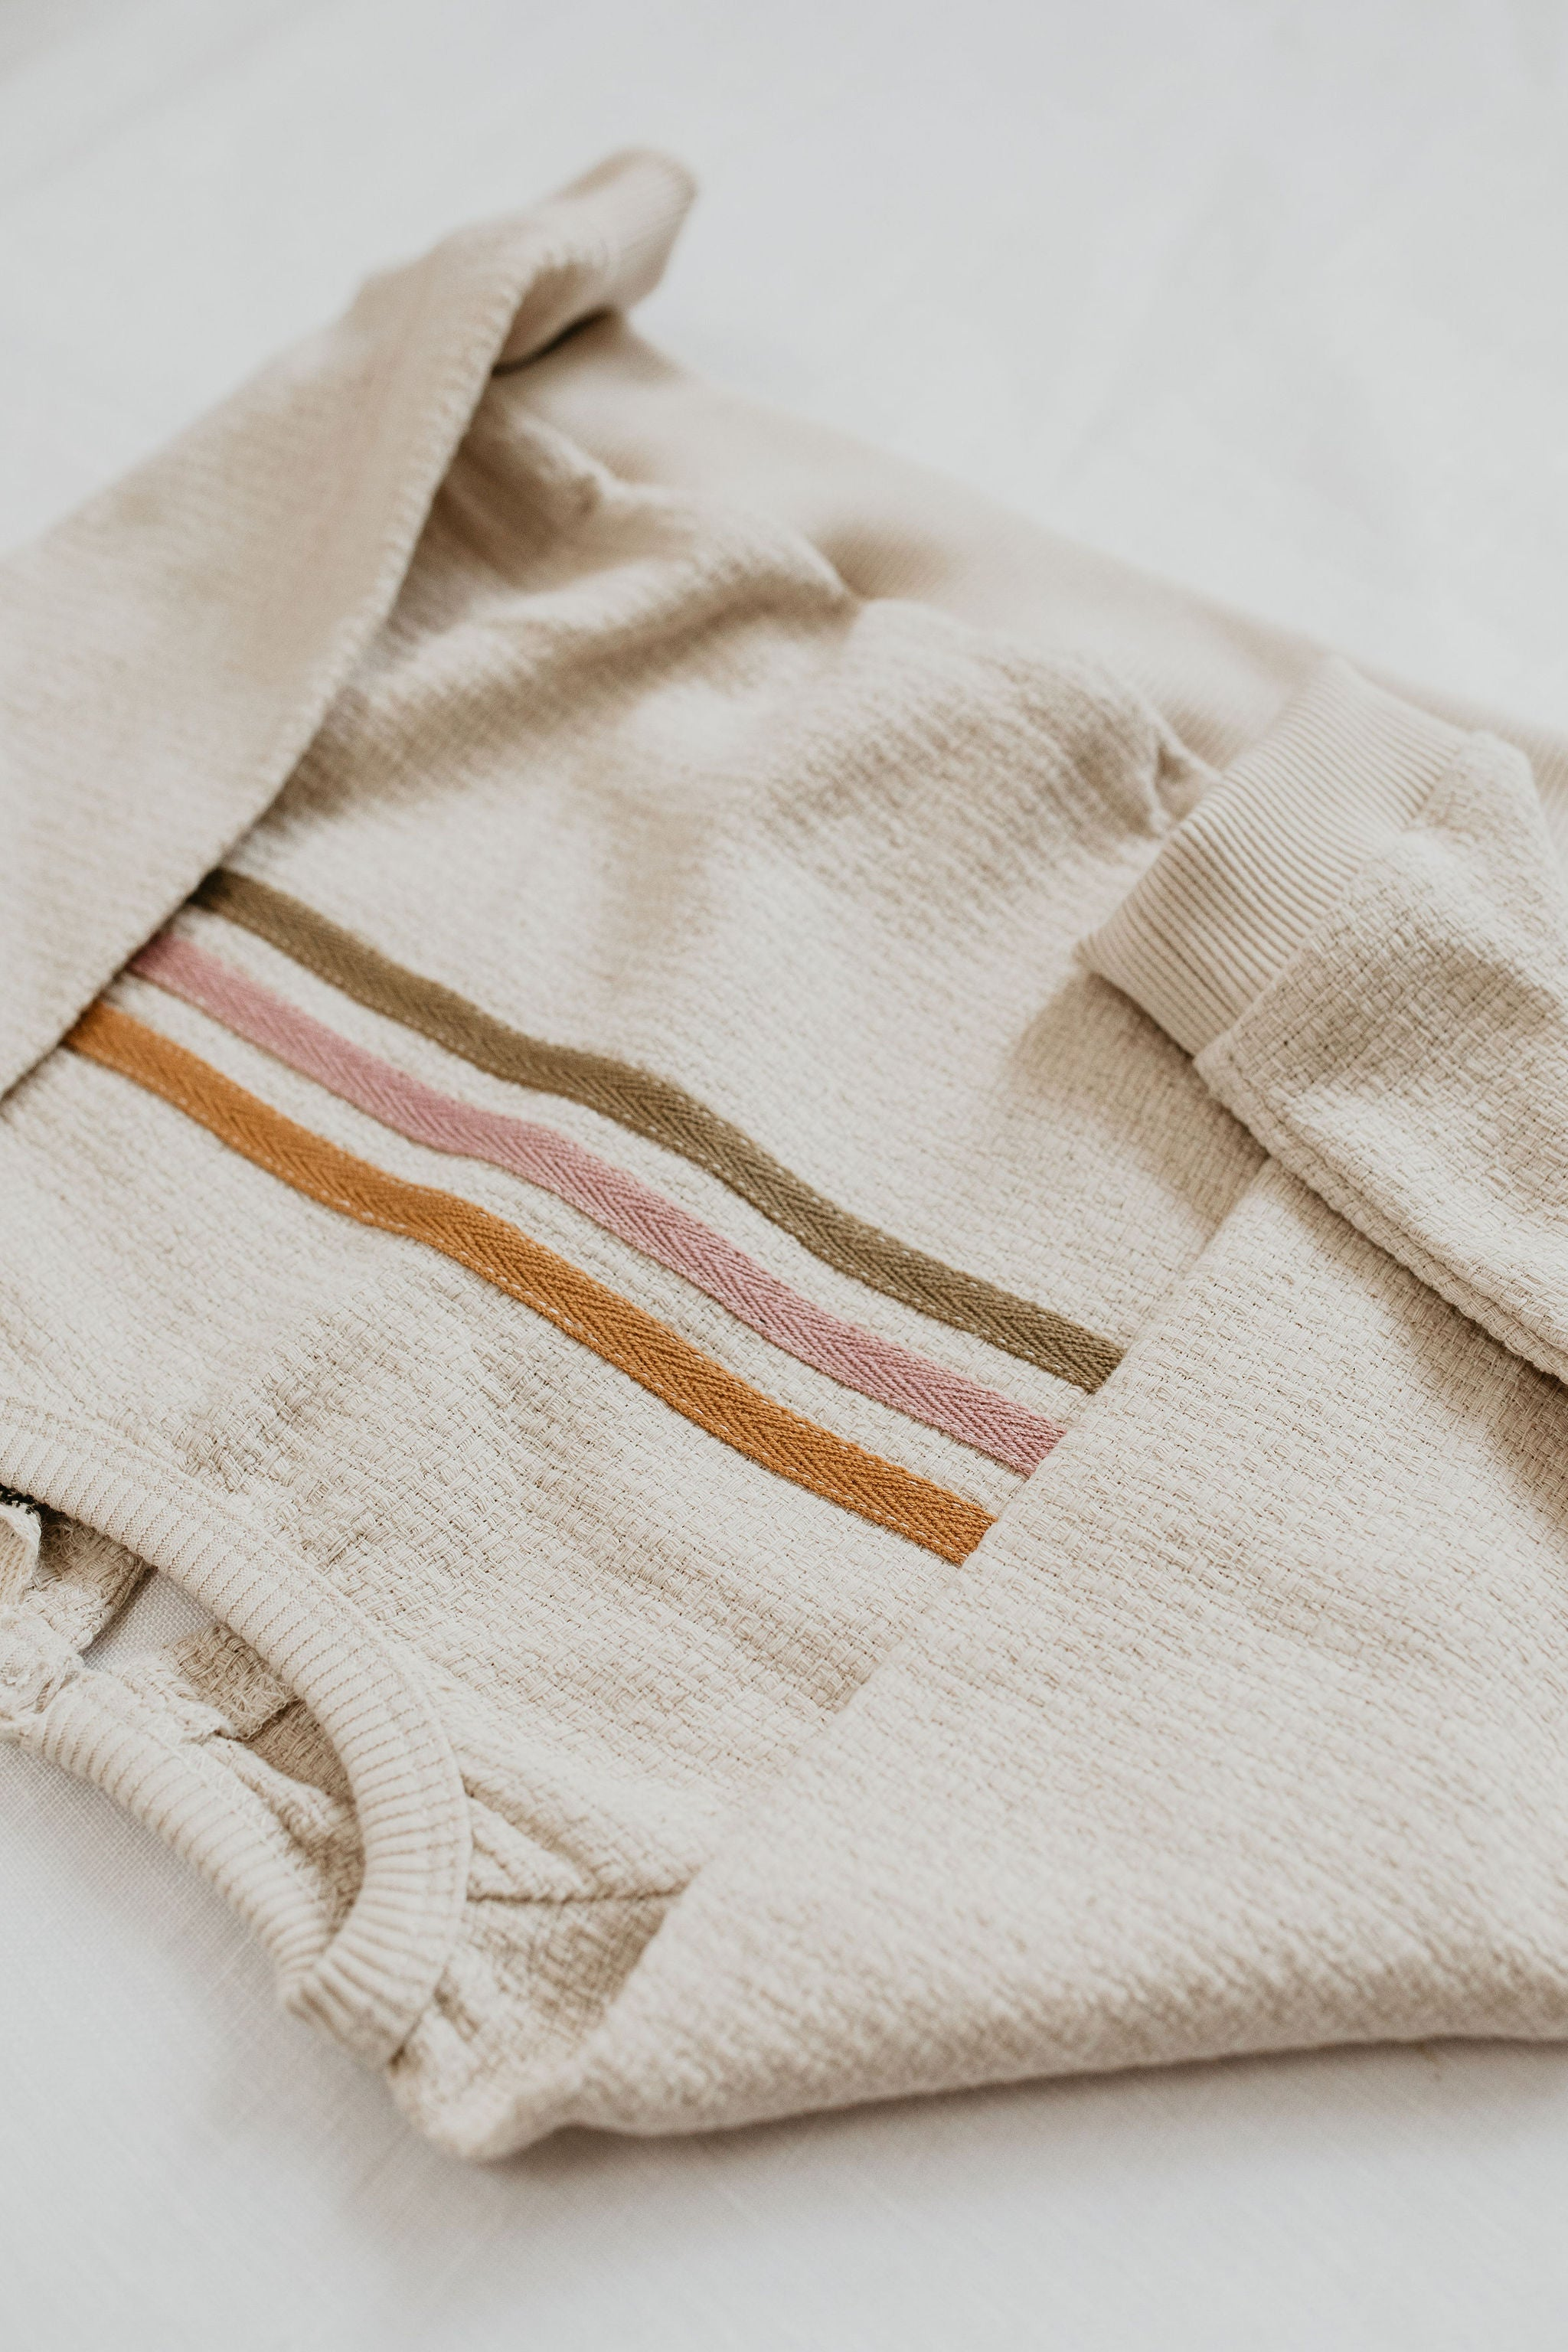 The Woven Stripe Jumper